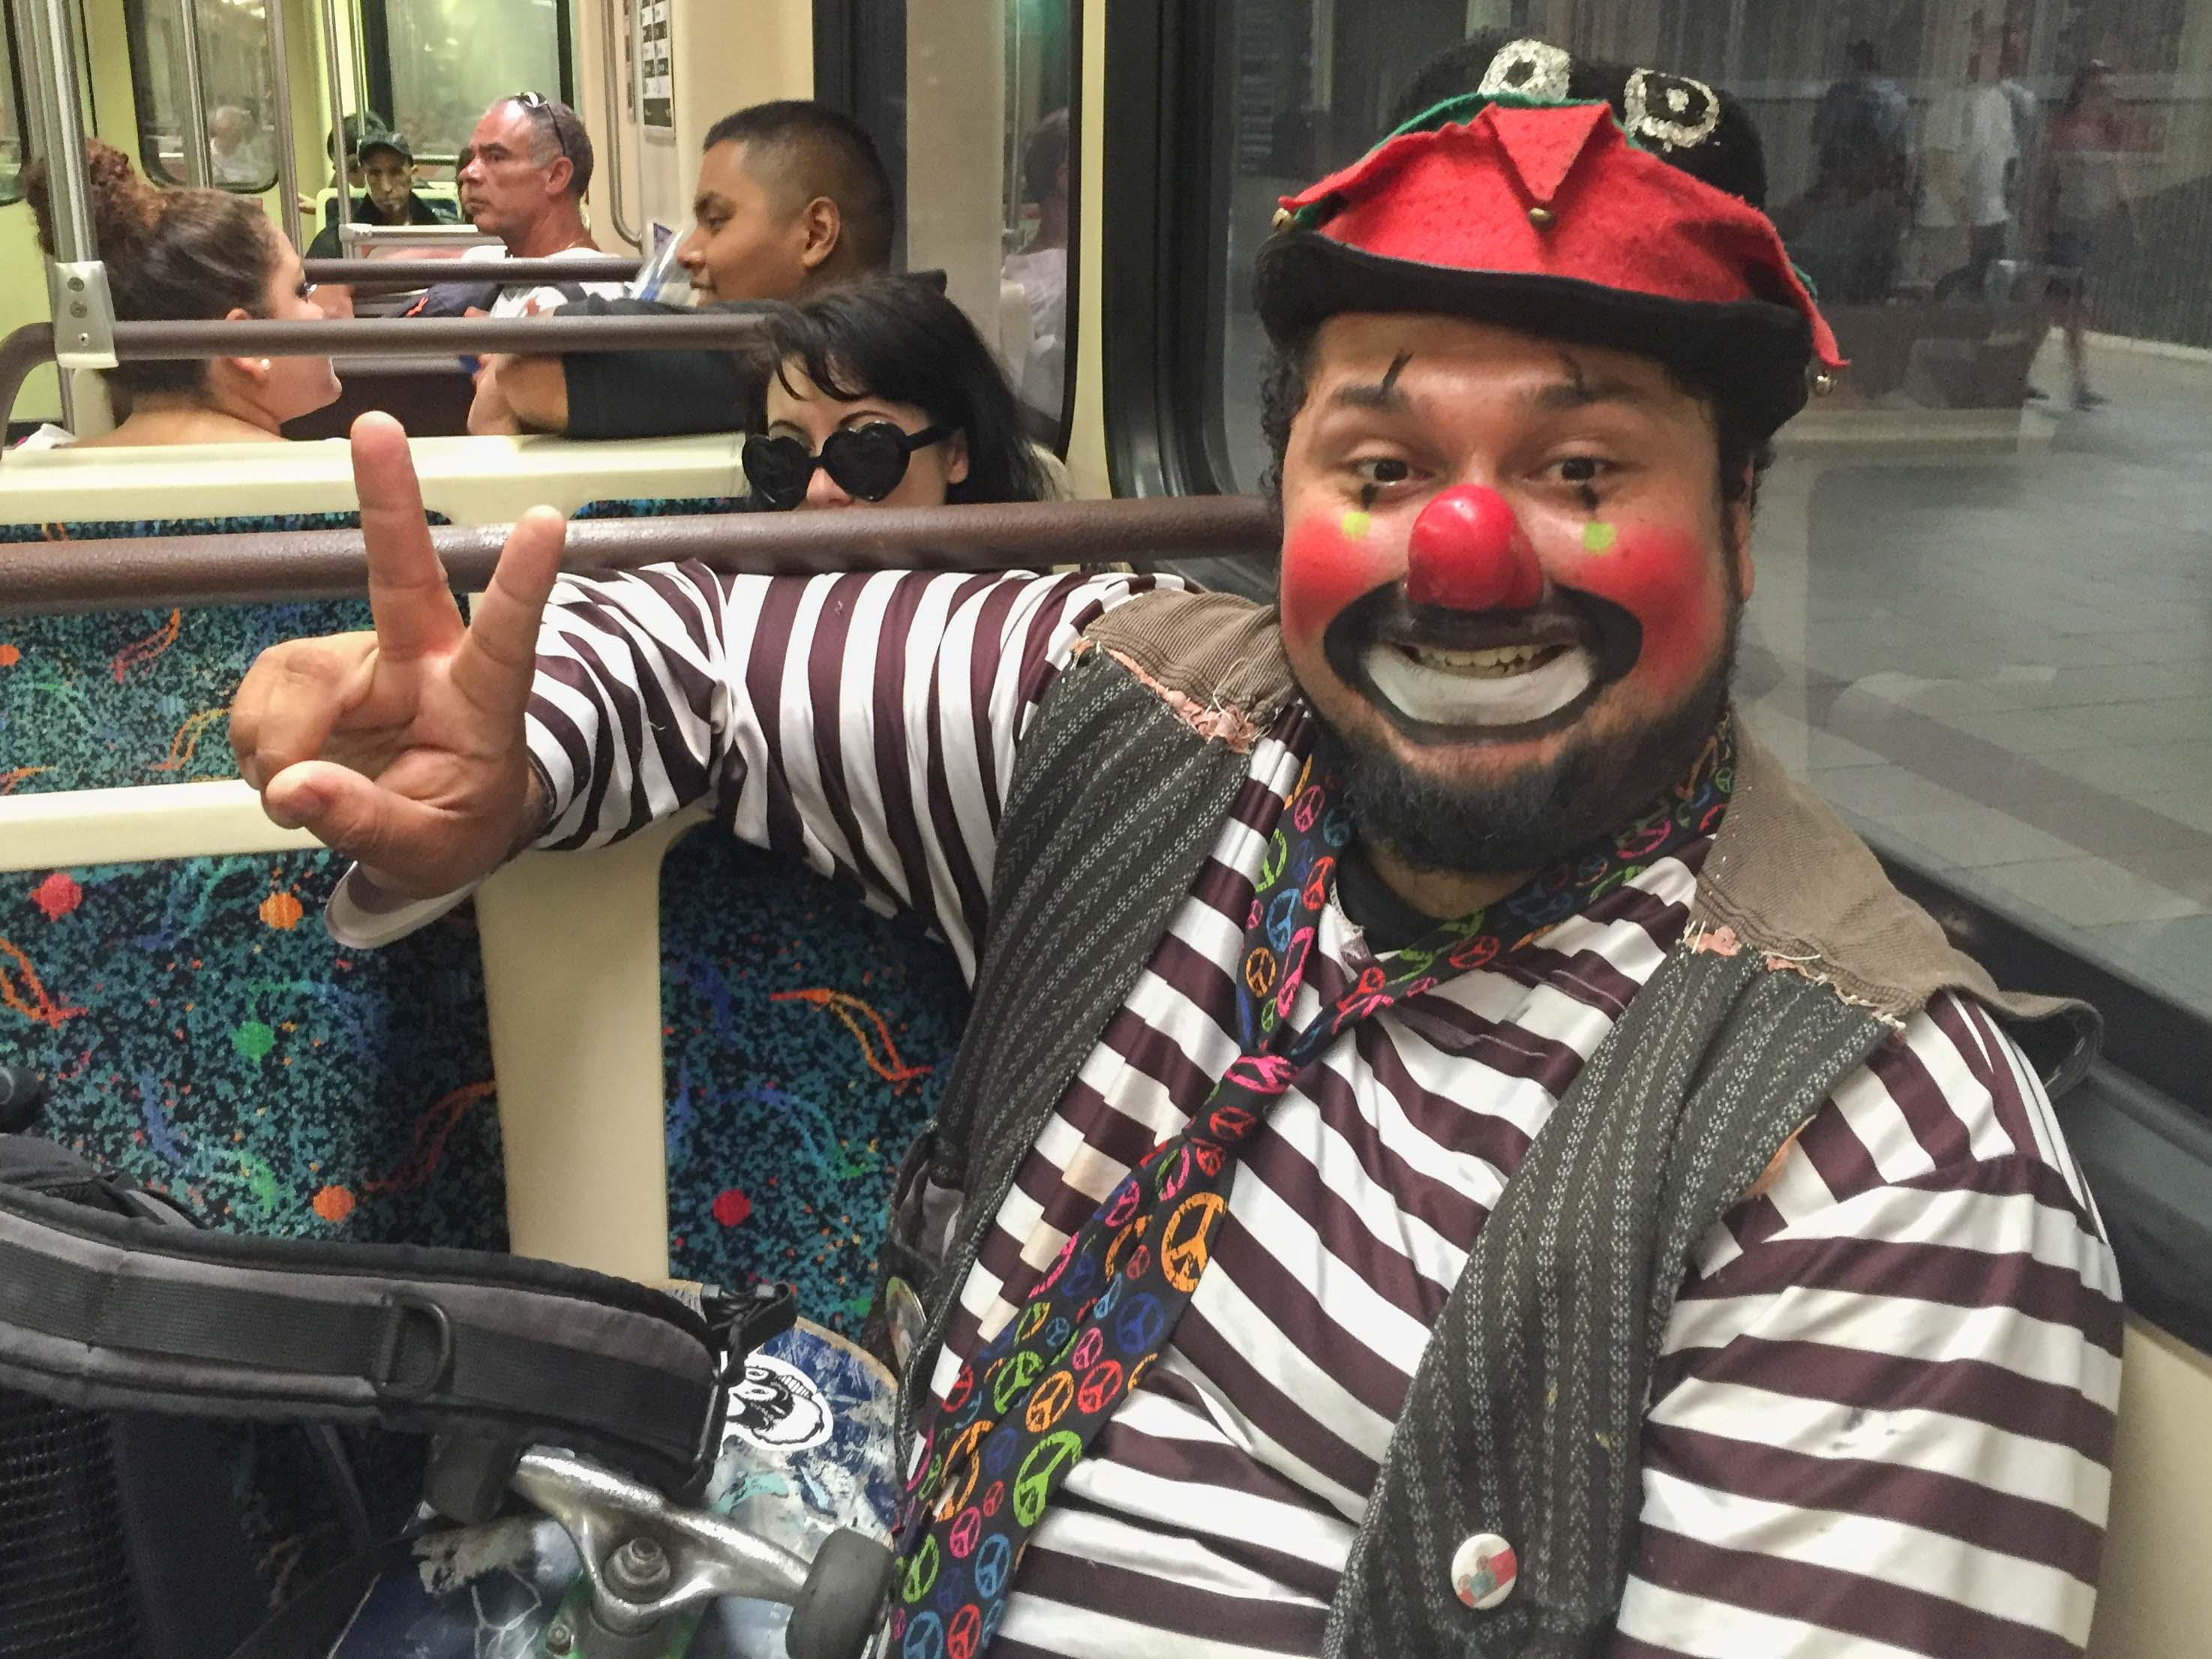 My first encounter with a clown on a train at Union Station today. Photo by Steve Hymon/Metro.